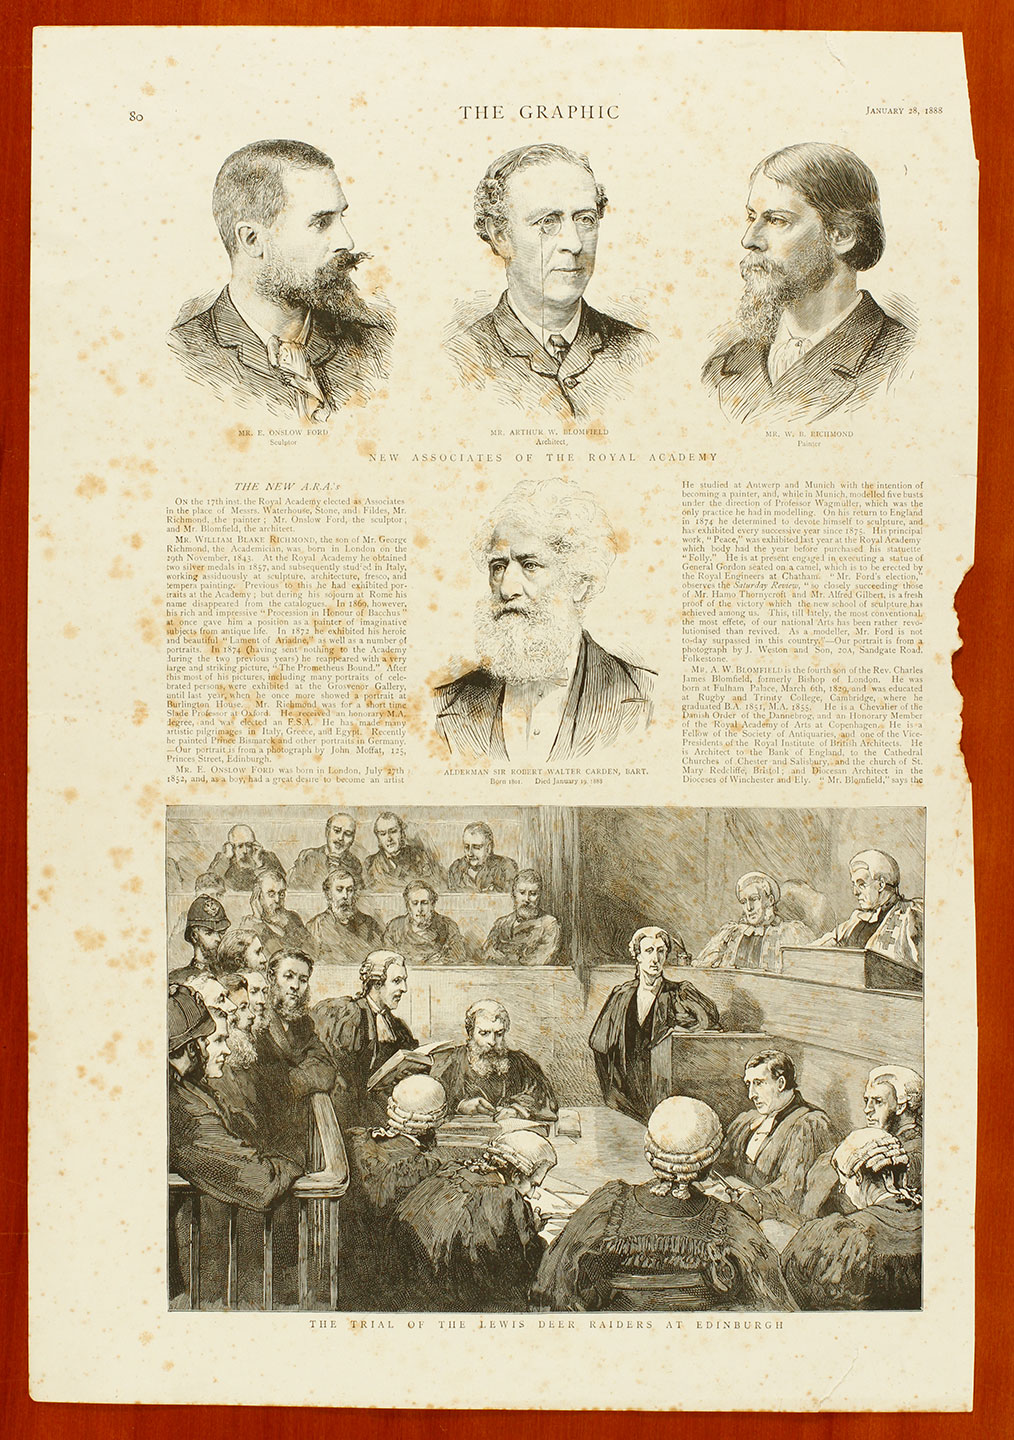 'The Graphic', 28th January 1888, showing New Associates of the Royal Academy